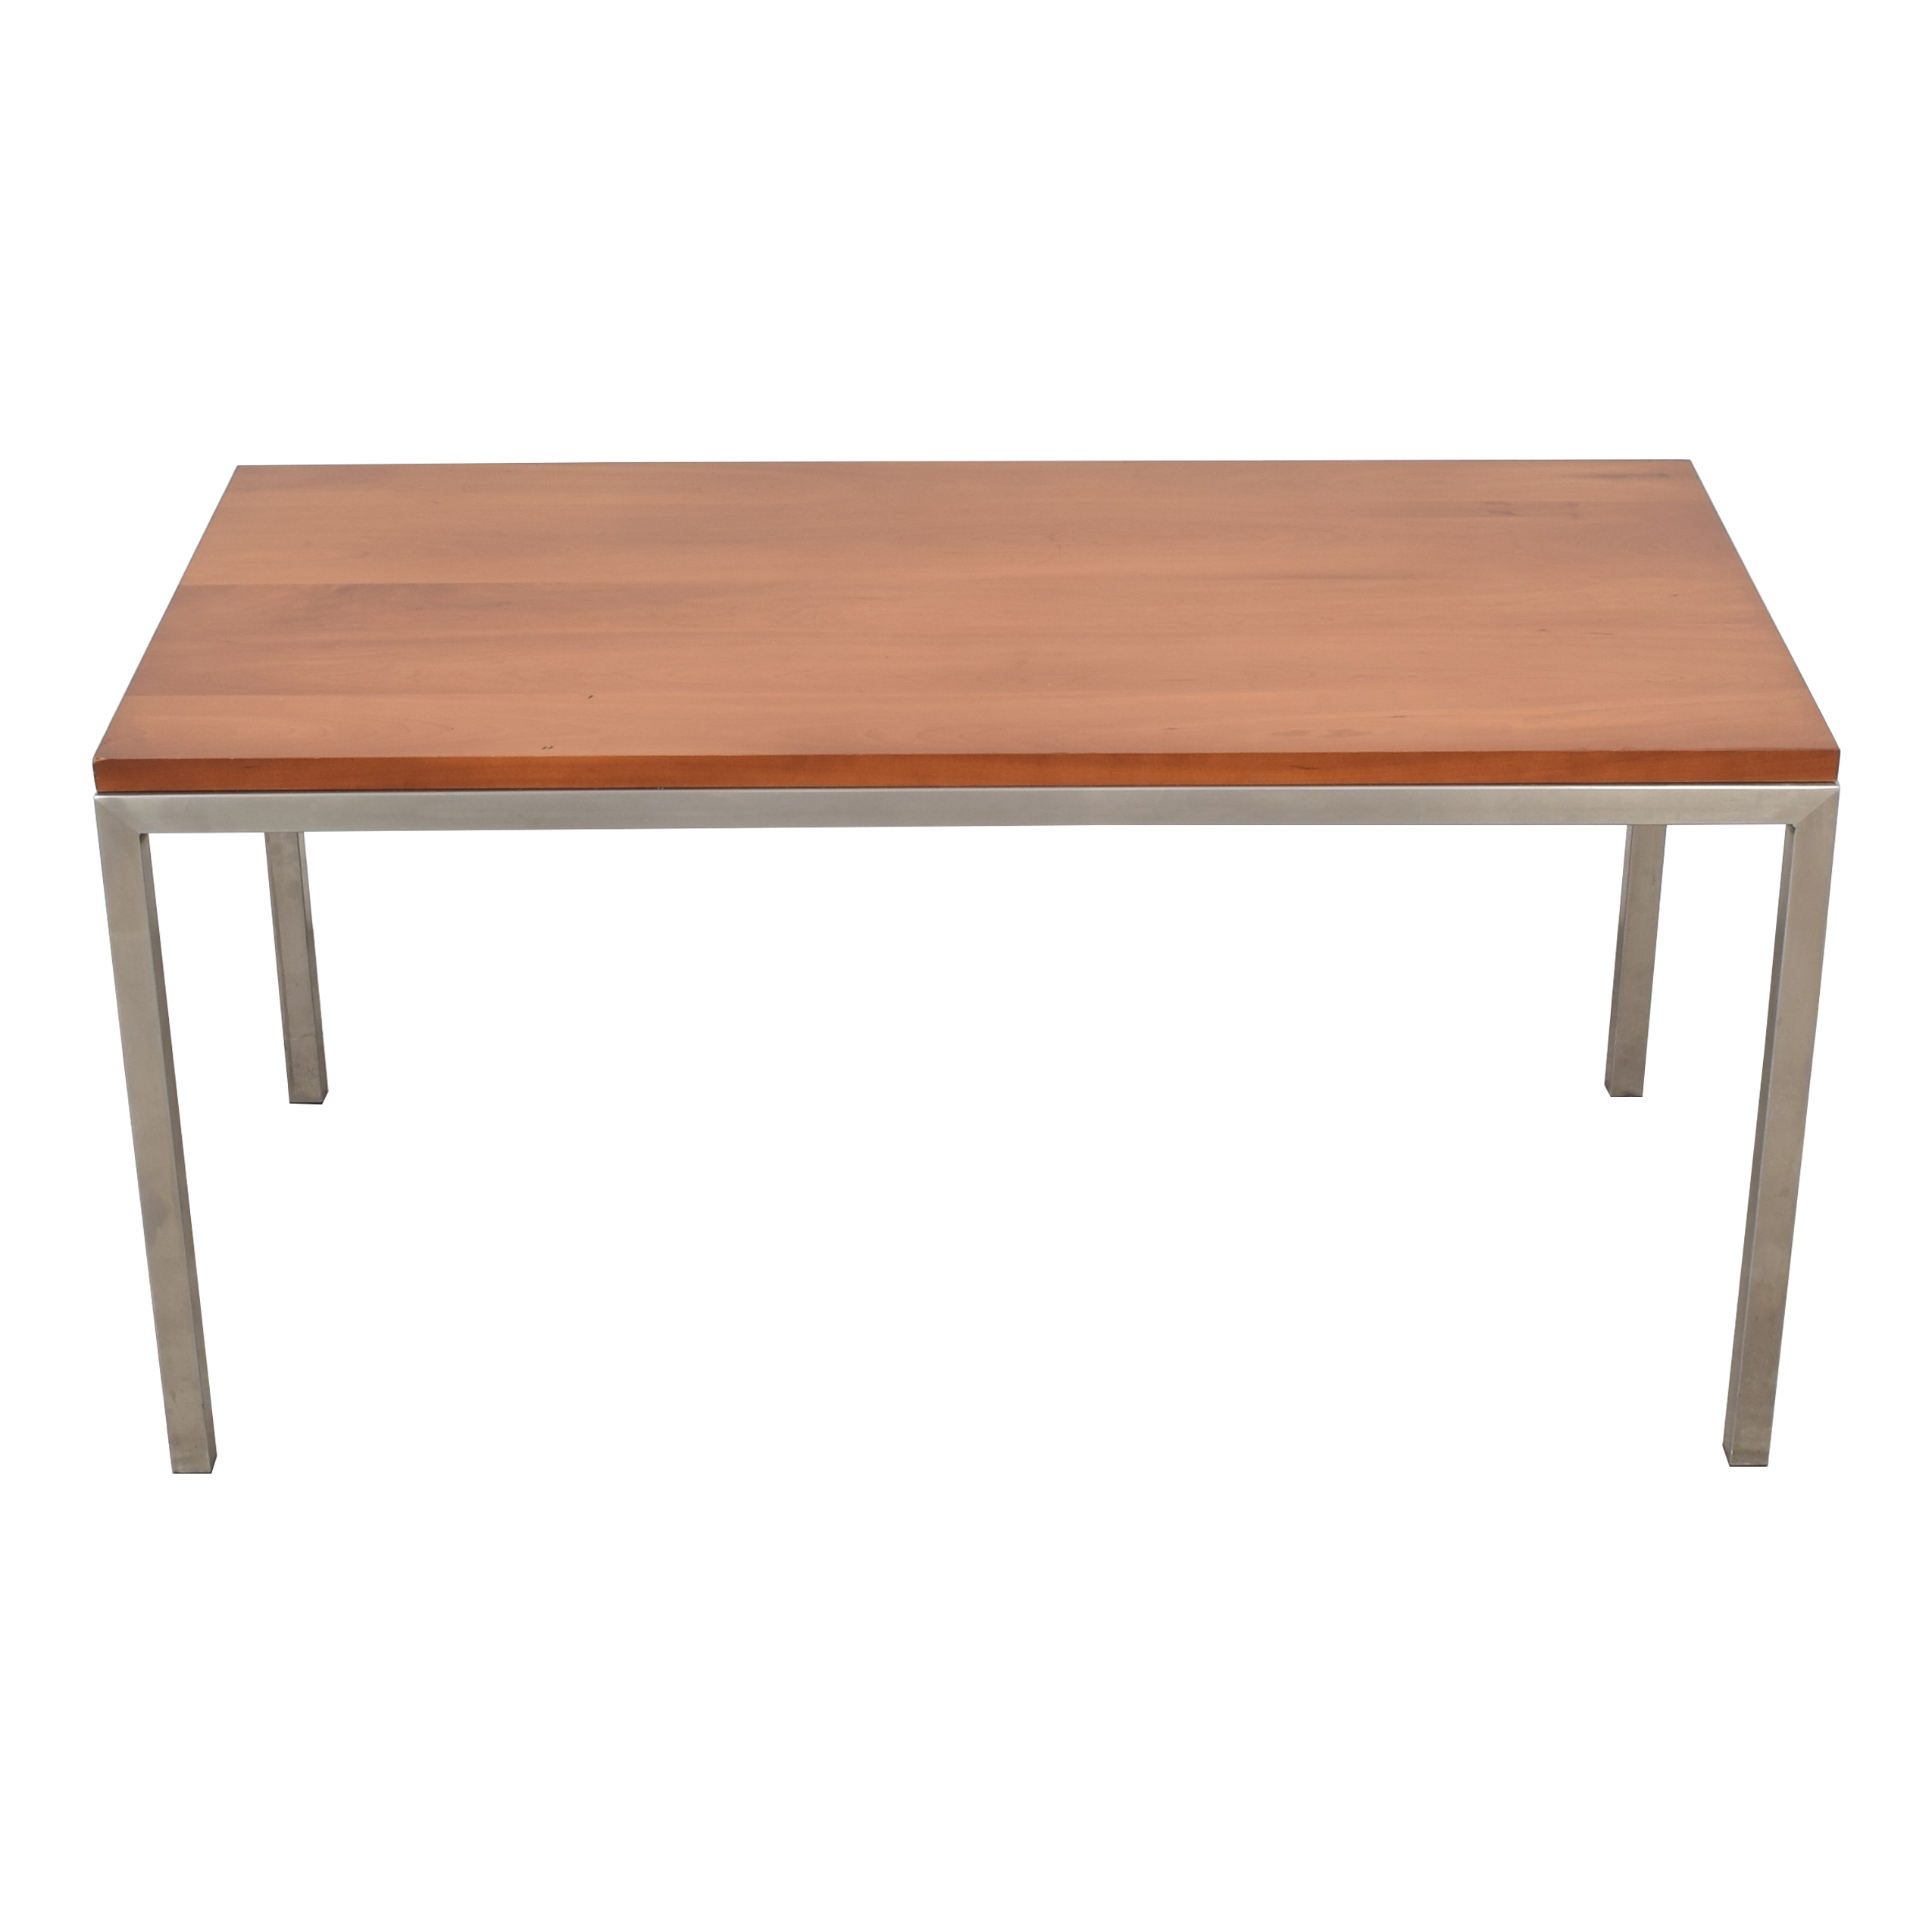 Room & Board Room & Board Rand Dining Table second hand